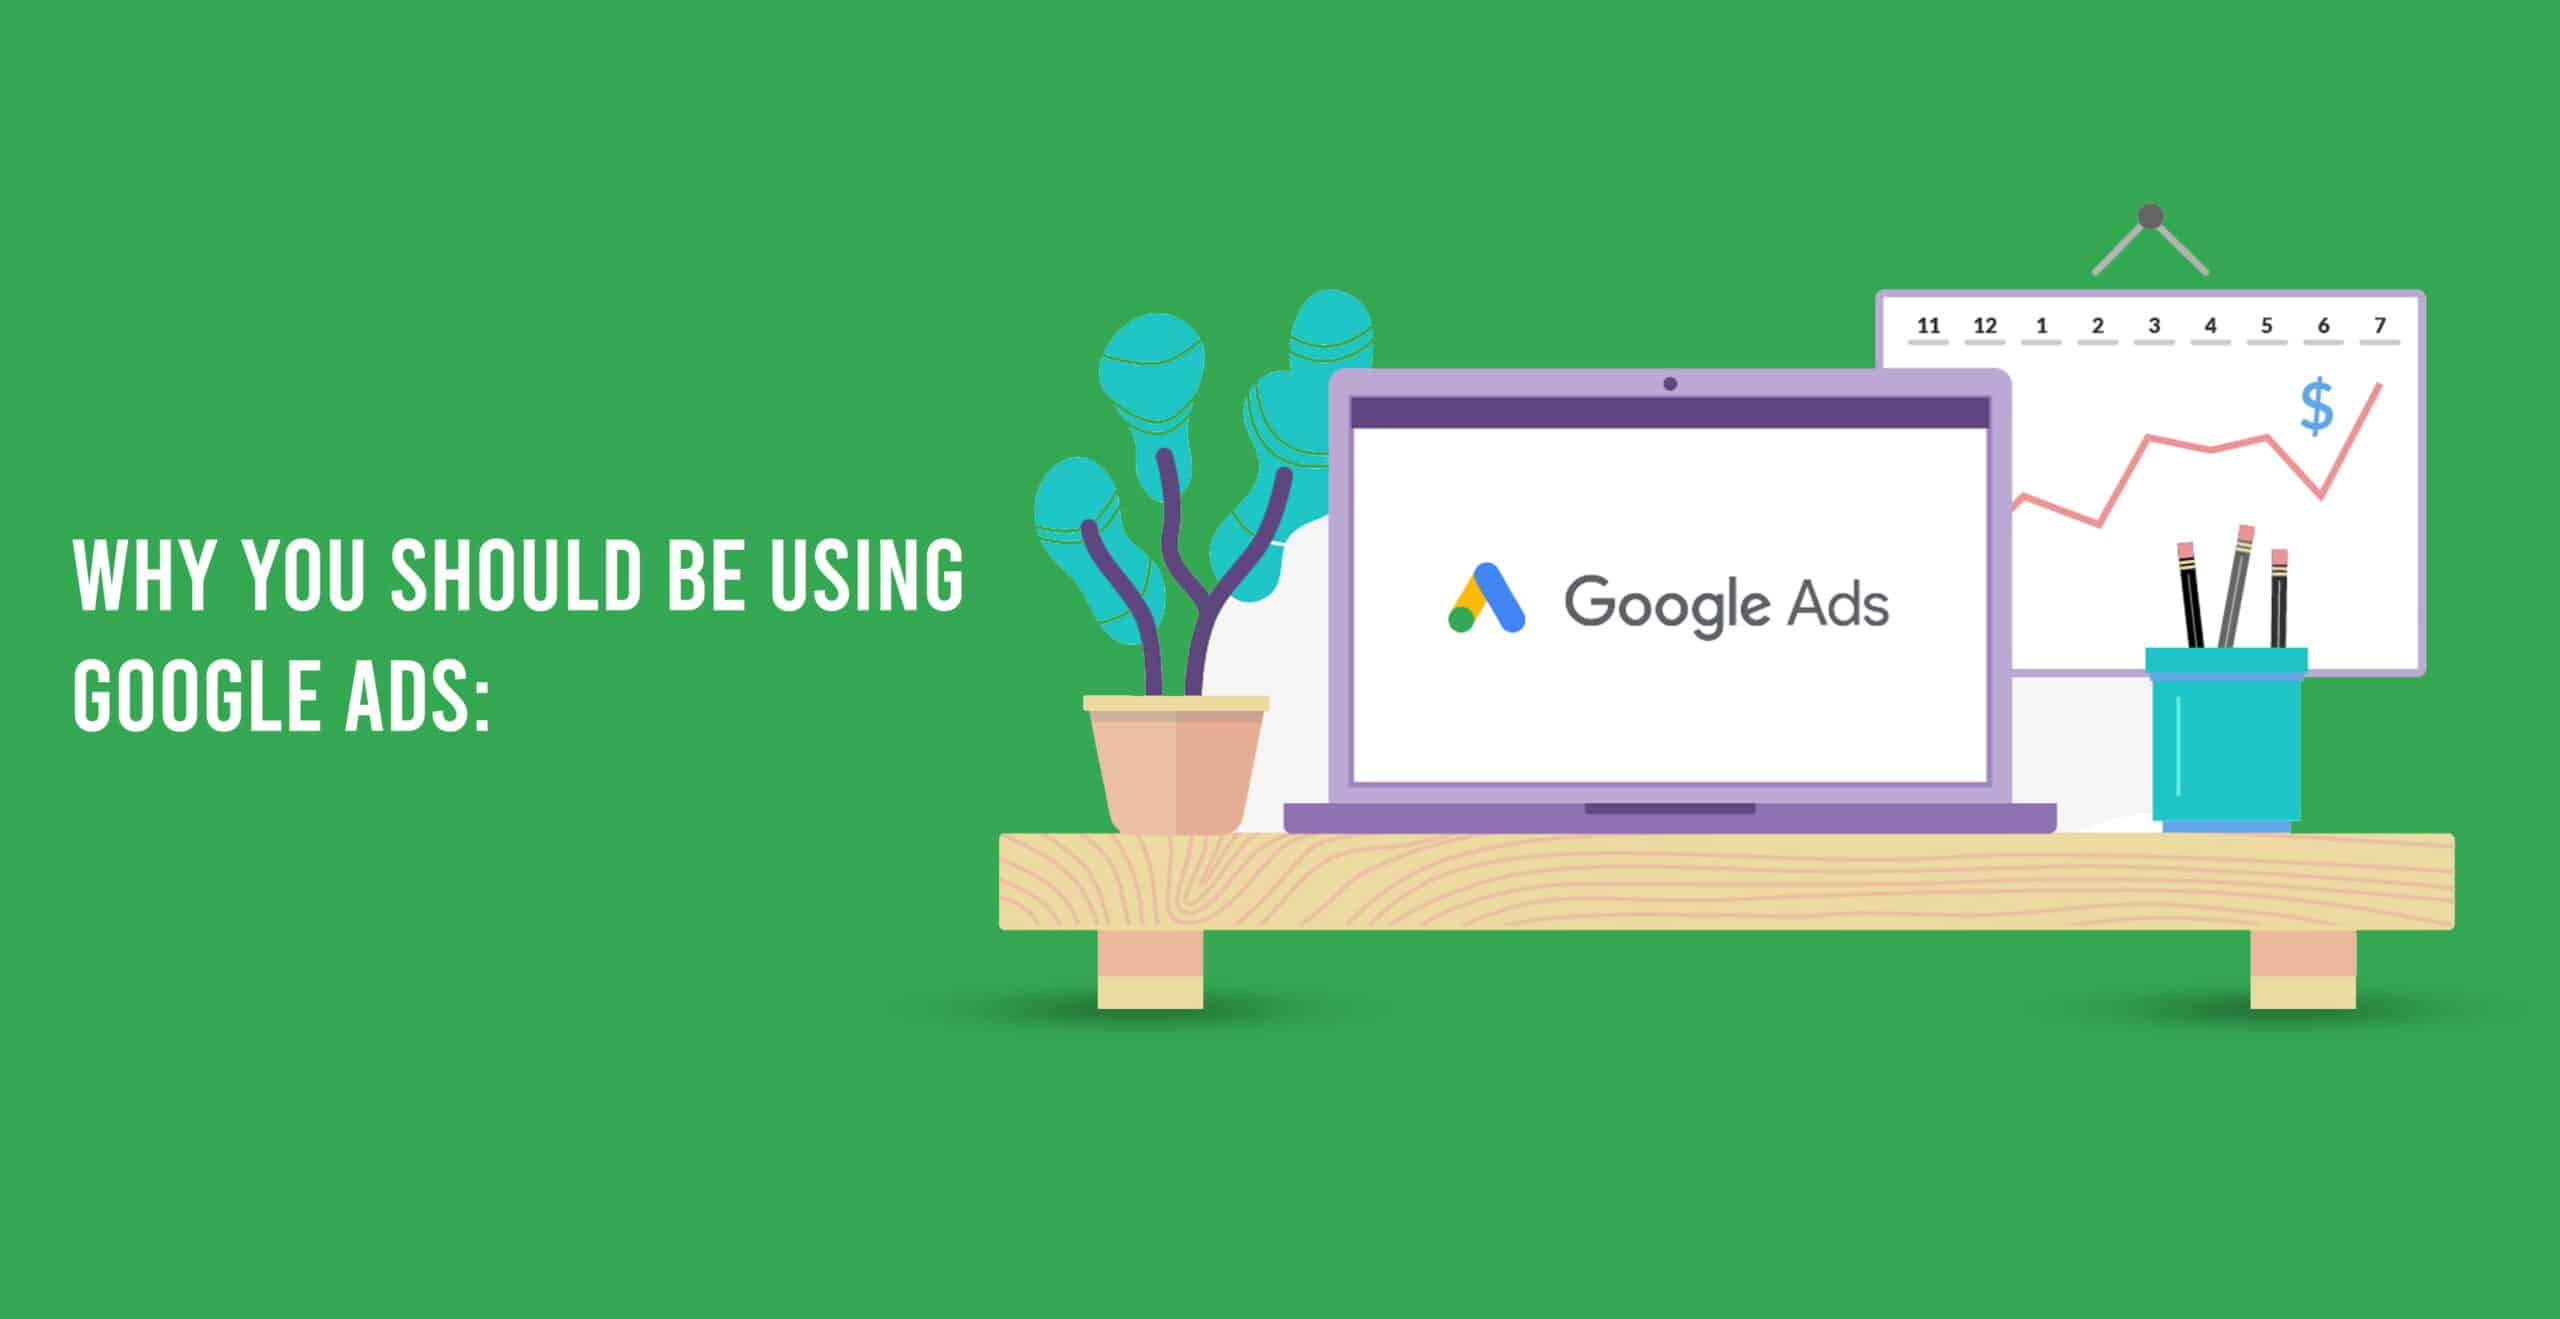 How can use Google ads in your Business